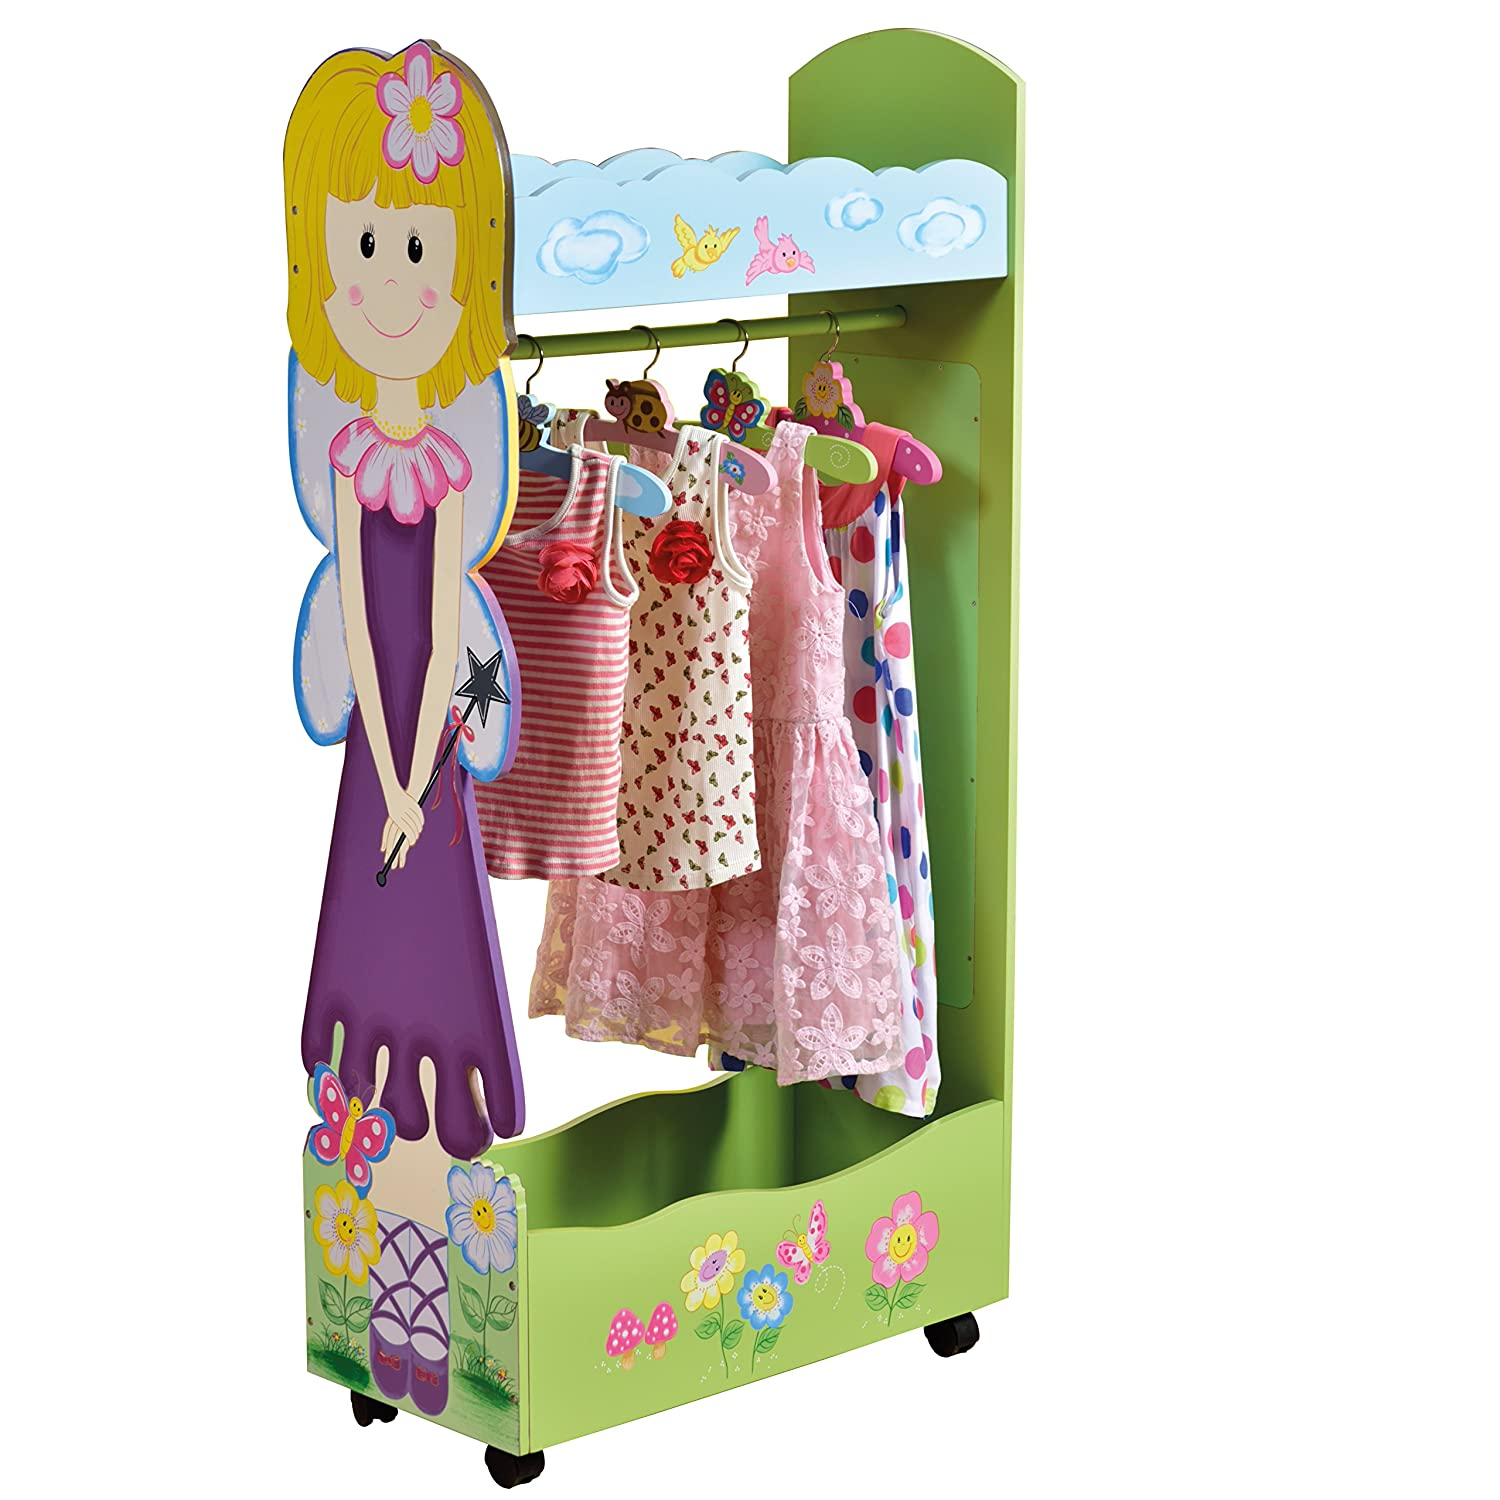 Amazon.com: Liberty House Toys Fairy Dress Up Storage Centre With Hangers,  63 X 28 X 120 Cm, Various Pinks By Liberty House Toys: Appliances